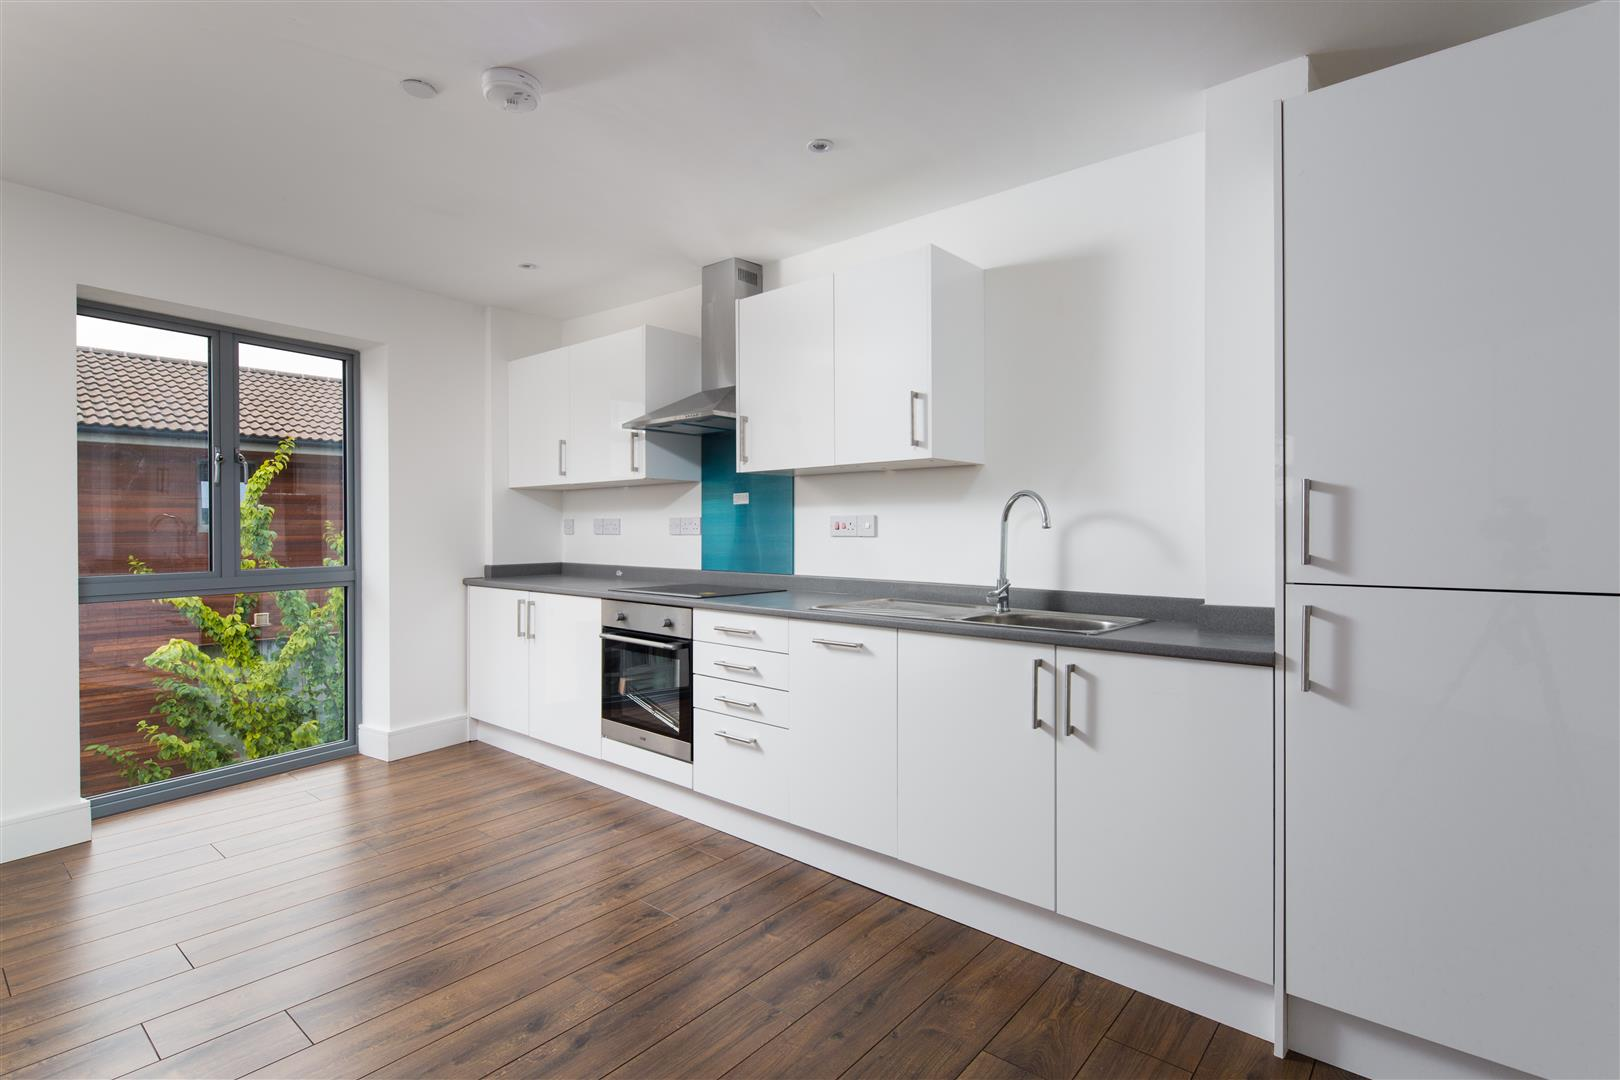 2 Bedrooms Flat for sale in Atlas Court, Barton Road